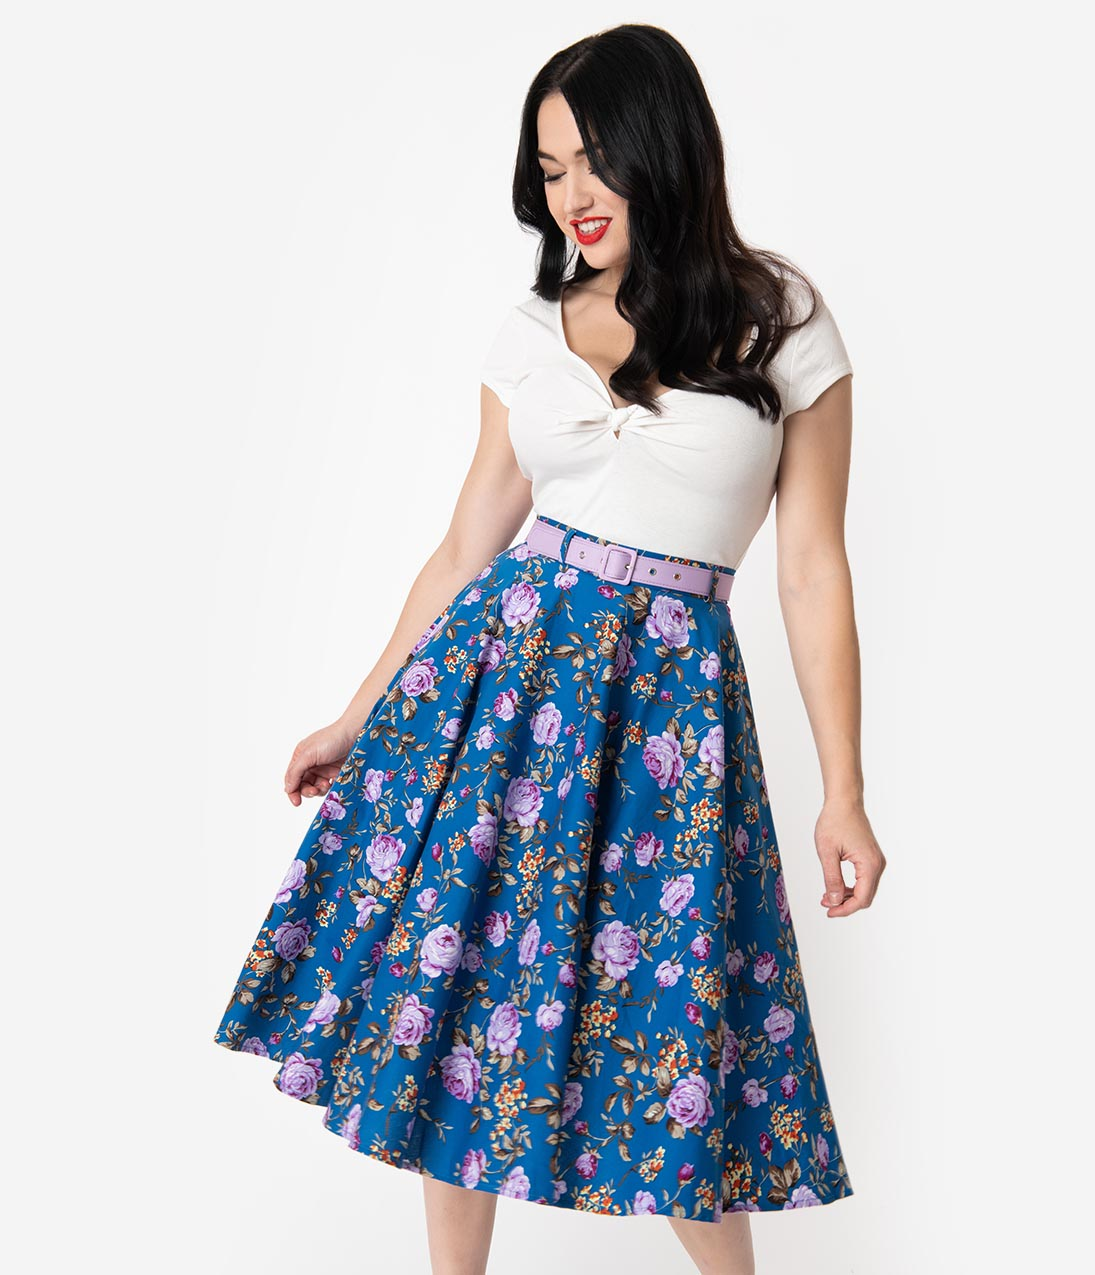 1950s Fashion History: Women's Clothing Hell Bunny 1950S Style Blue  Purple Floral High Waisted Violetta Swing Skirt $58.00 AT vintagedancer.com